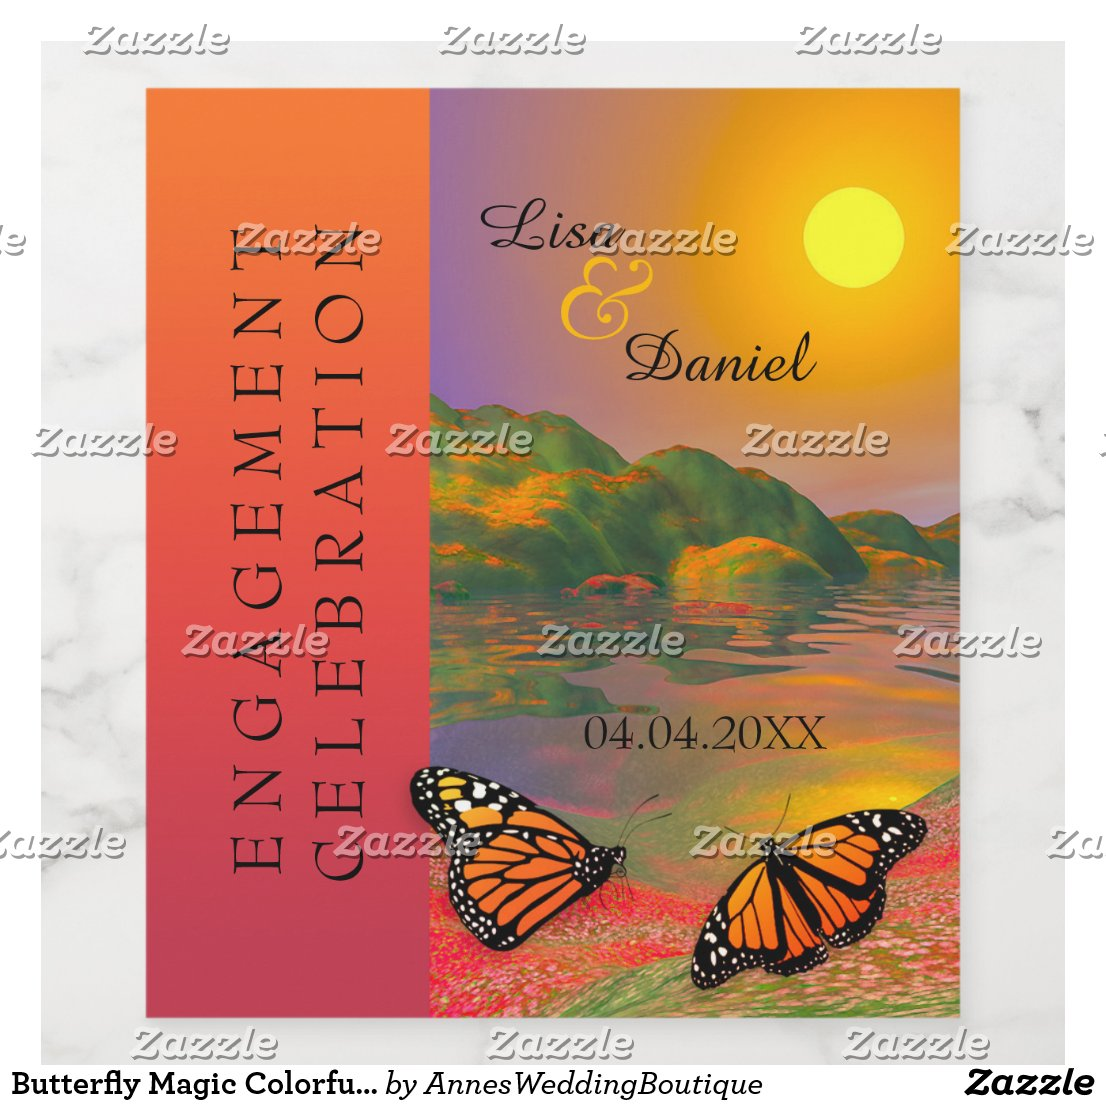 Butterfly Magic Colorful Engagement Wine Label